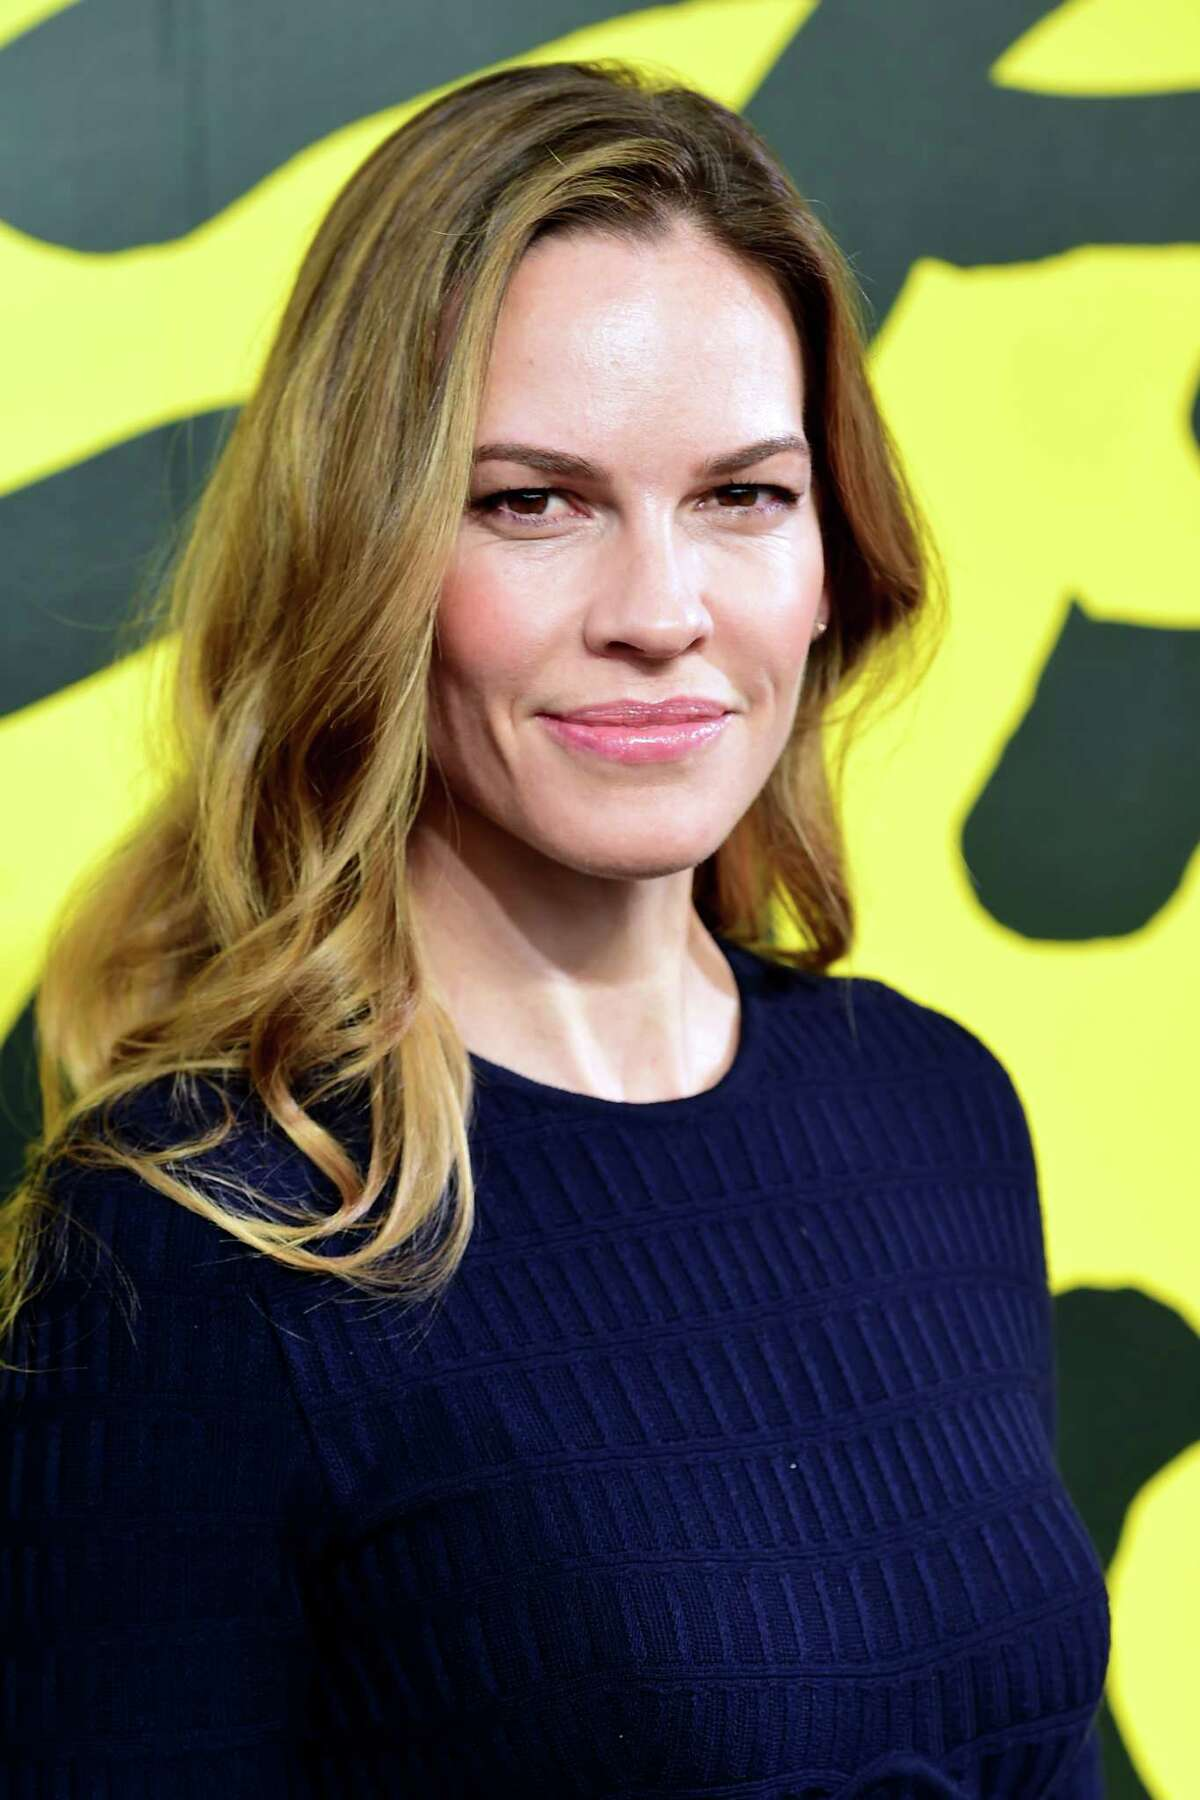 LOCARNO, SWITZERLAND - AUGUST 10: Actress Hilary Swank attends the Leopard Club Award Conversation during the 72nd Locarno Film Festival on August 10, 2019 in Locarno, Switzerland. (Photo by Pier Marco Tacca/Getty Images)